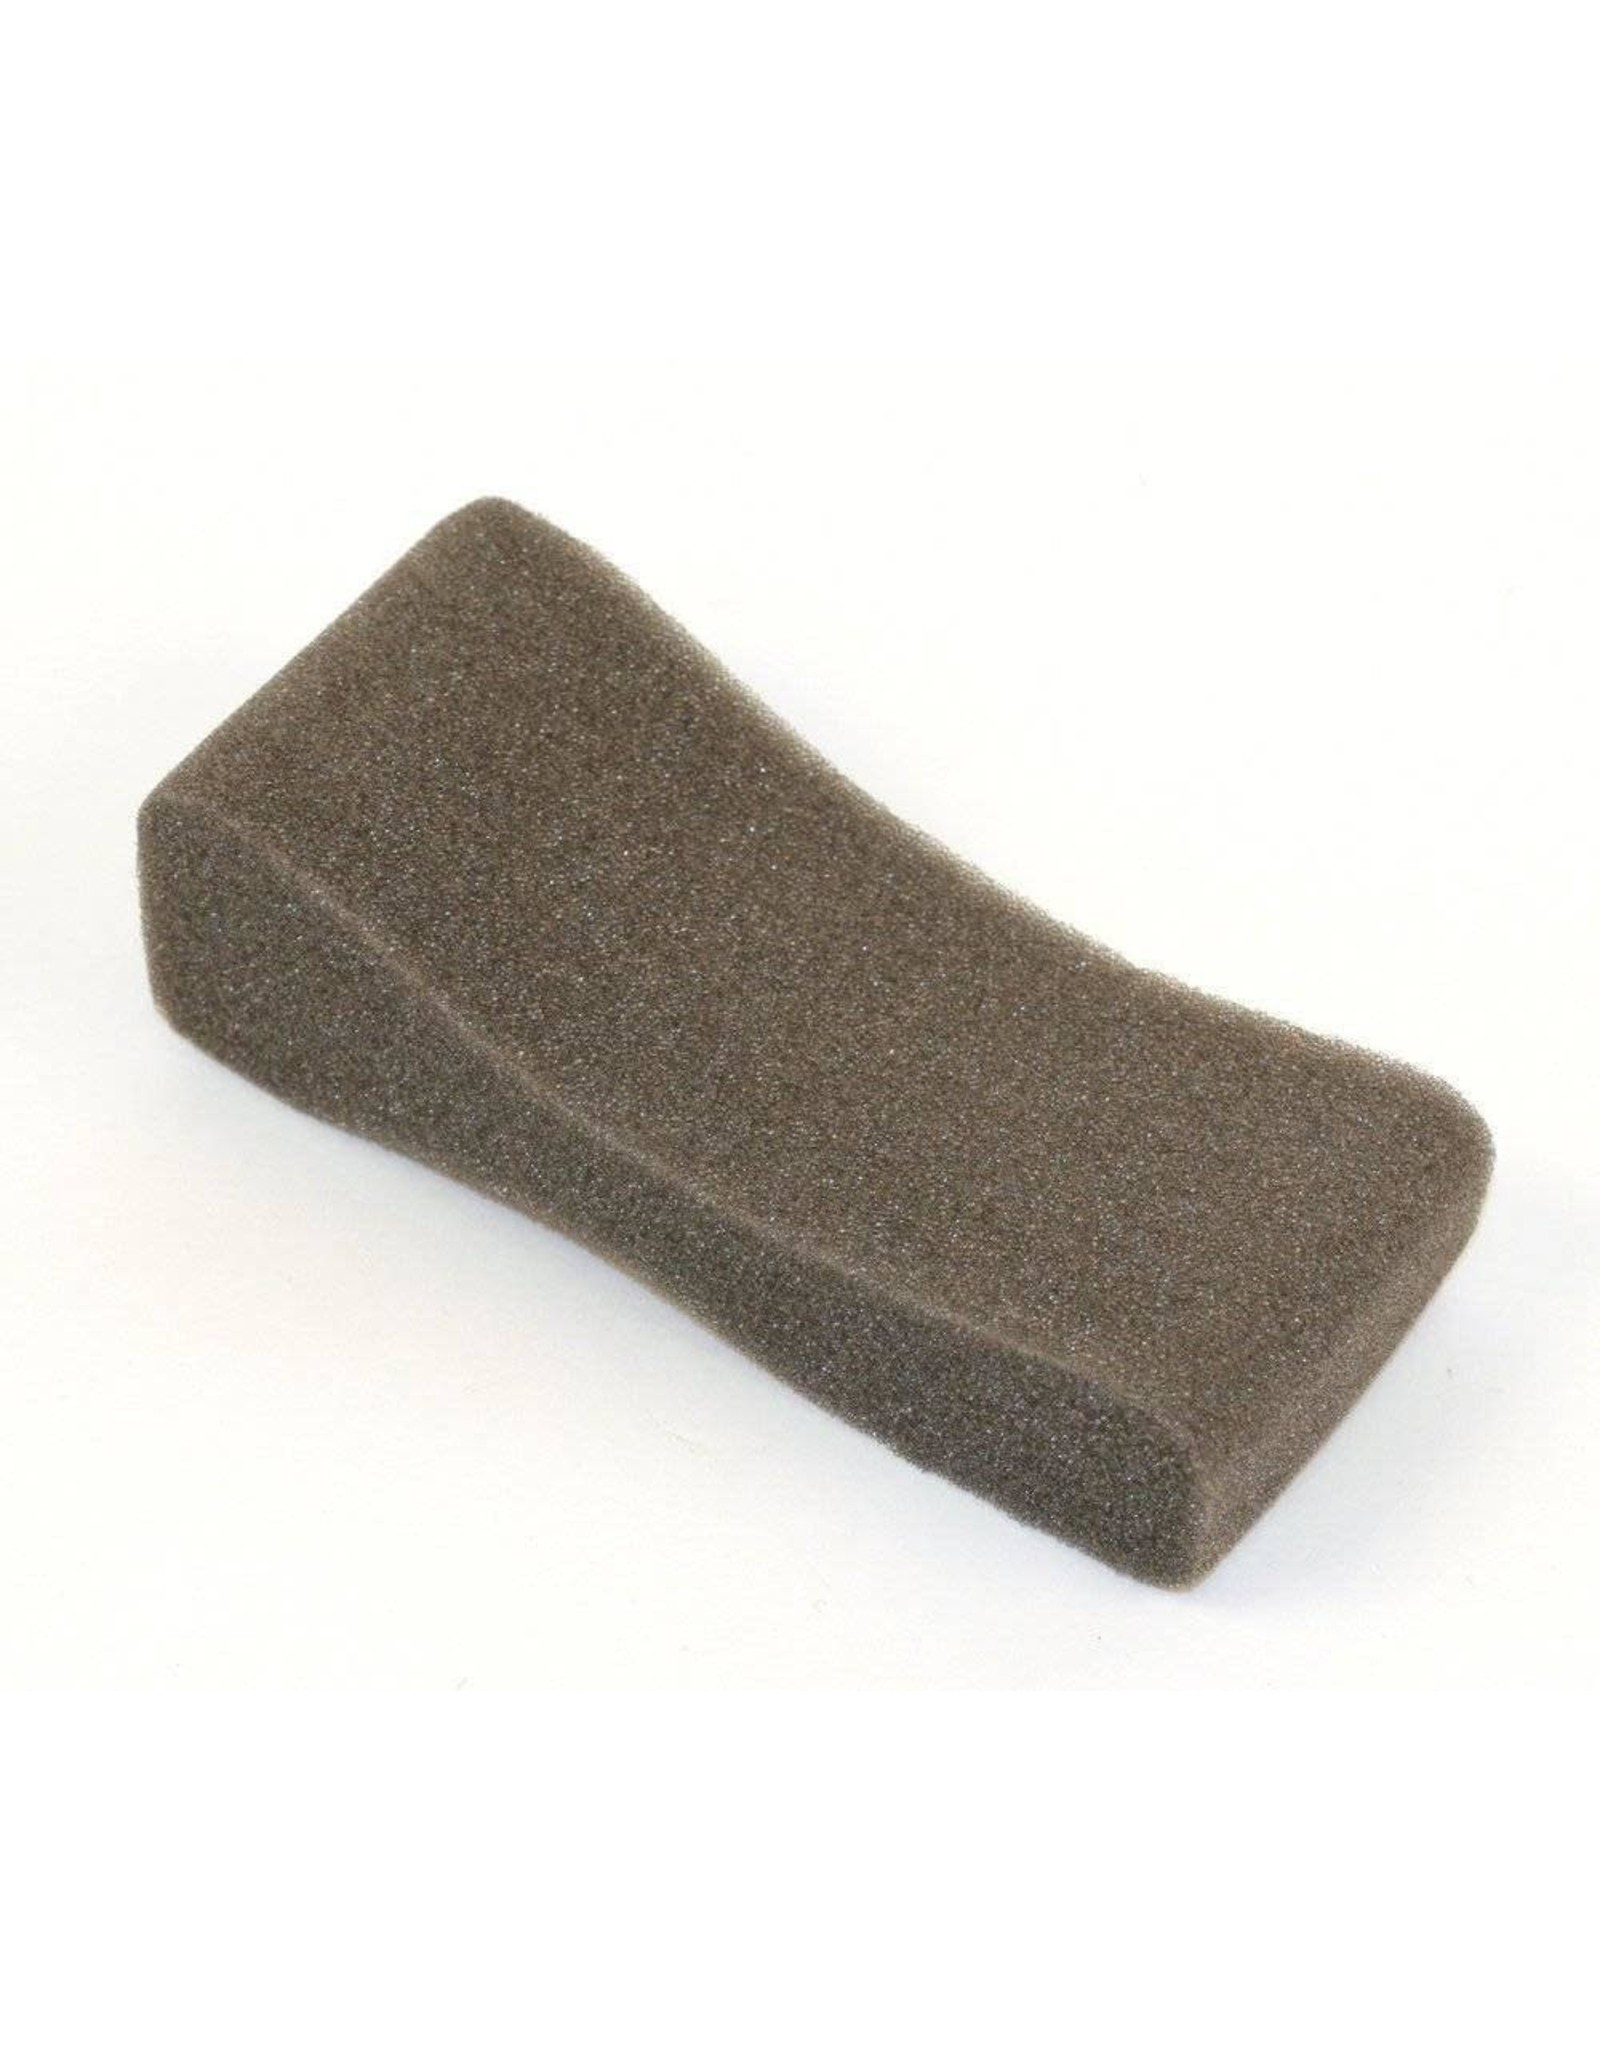 Players Players Violin Shoulder Rest Small 1/8-1/4